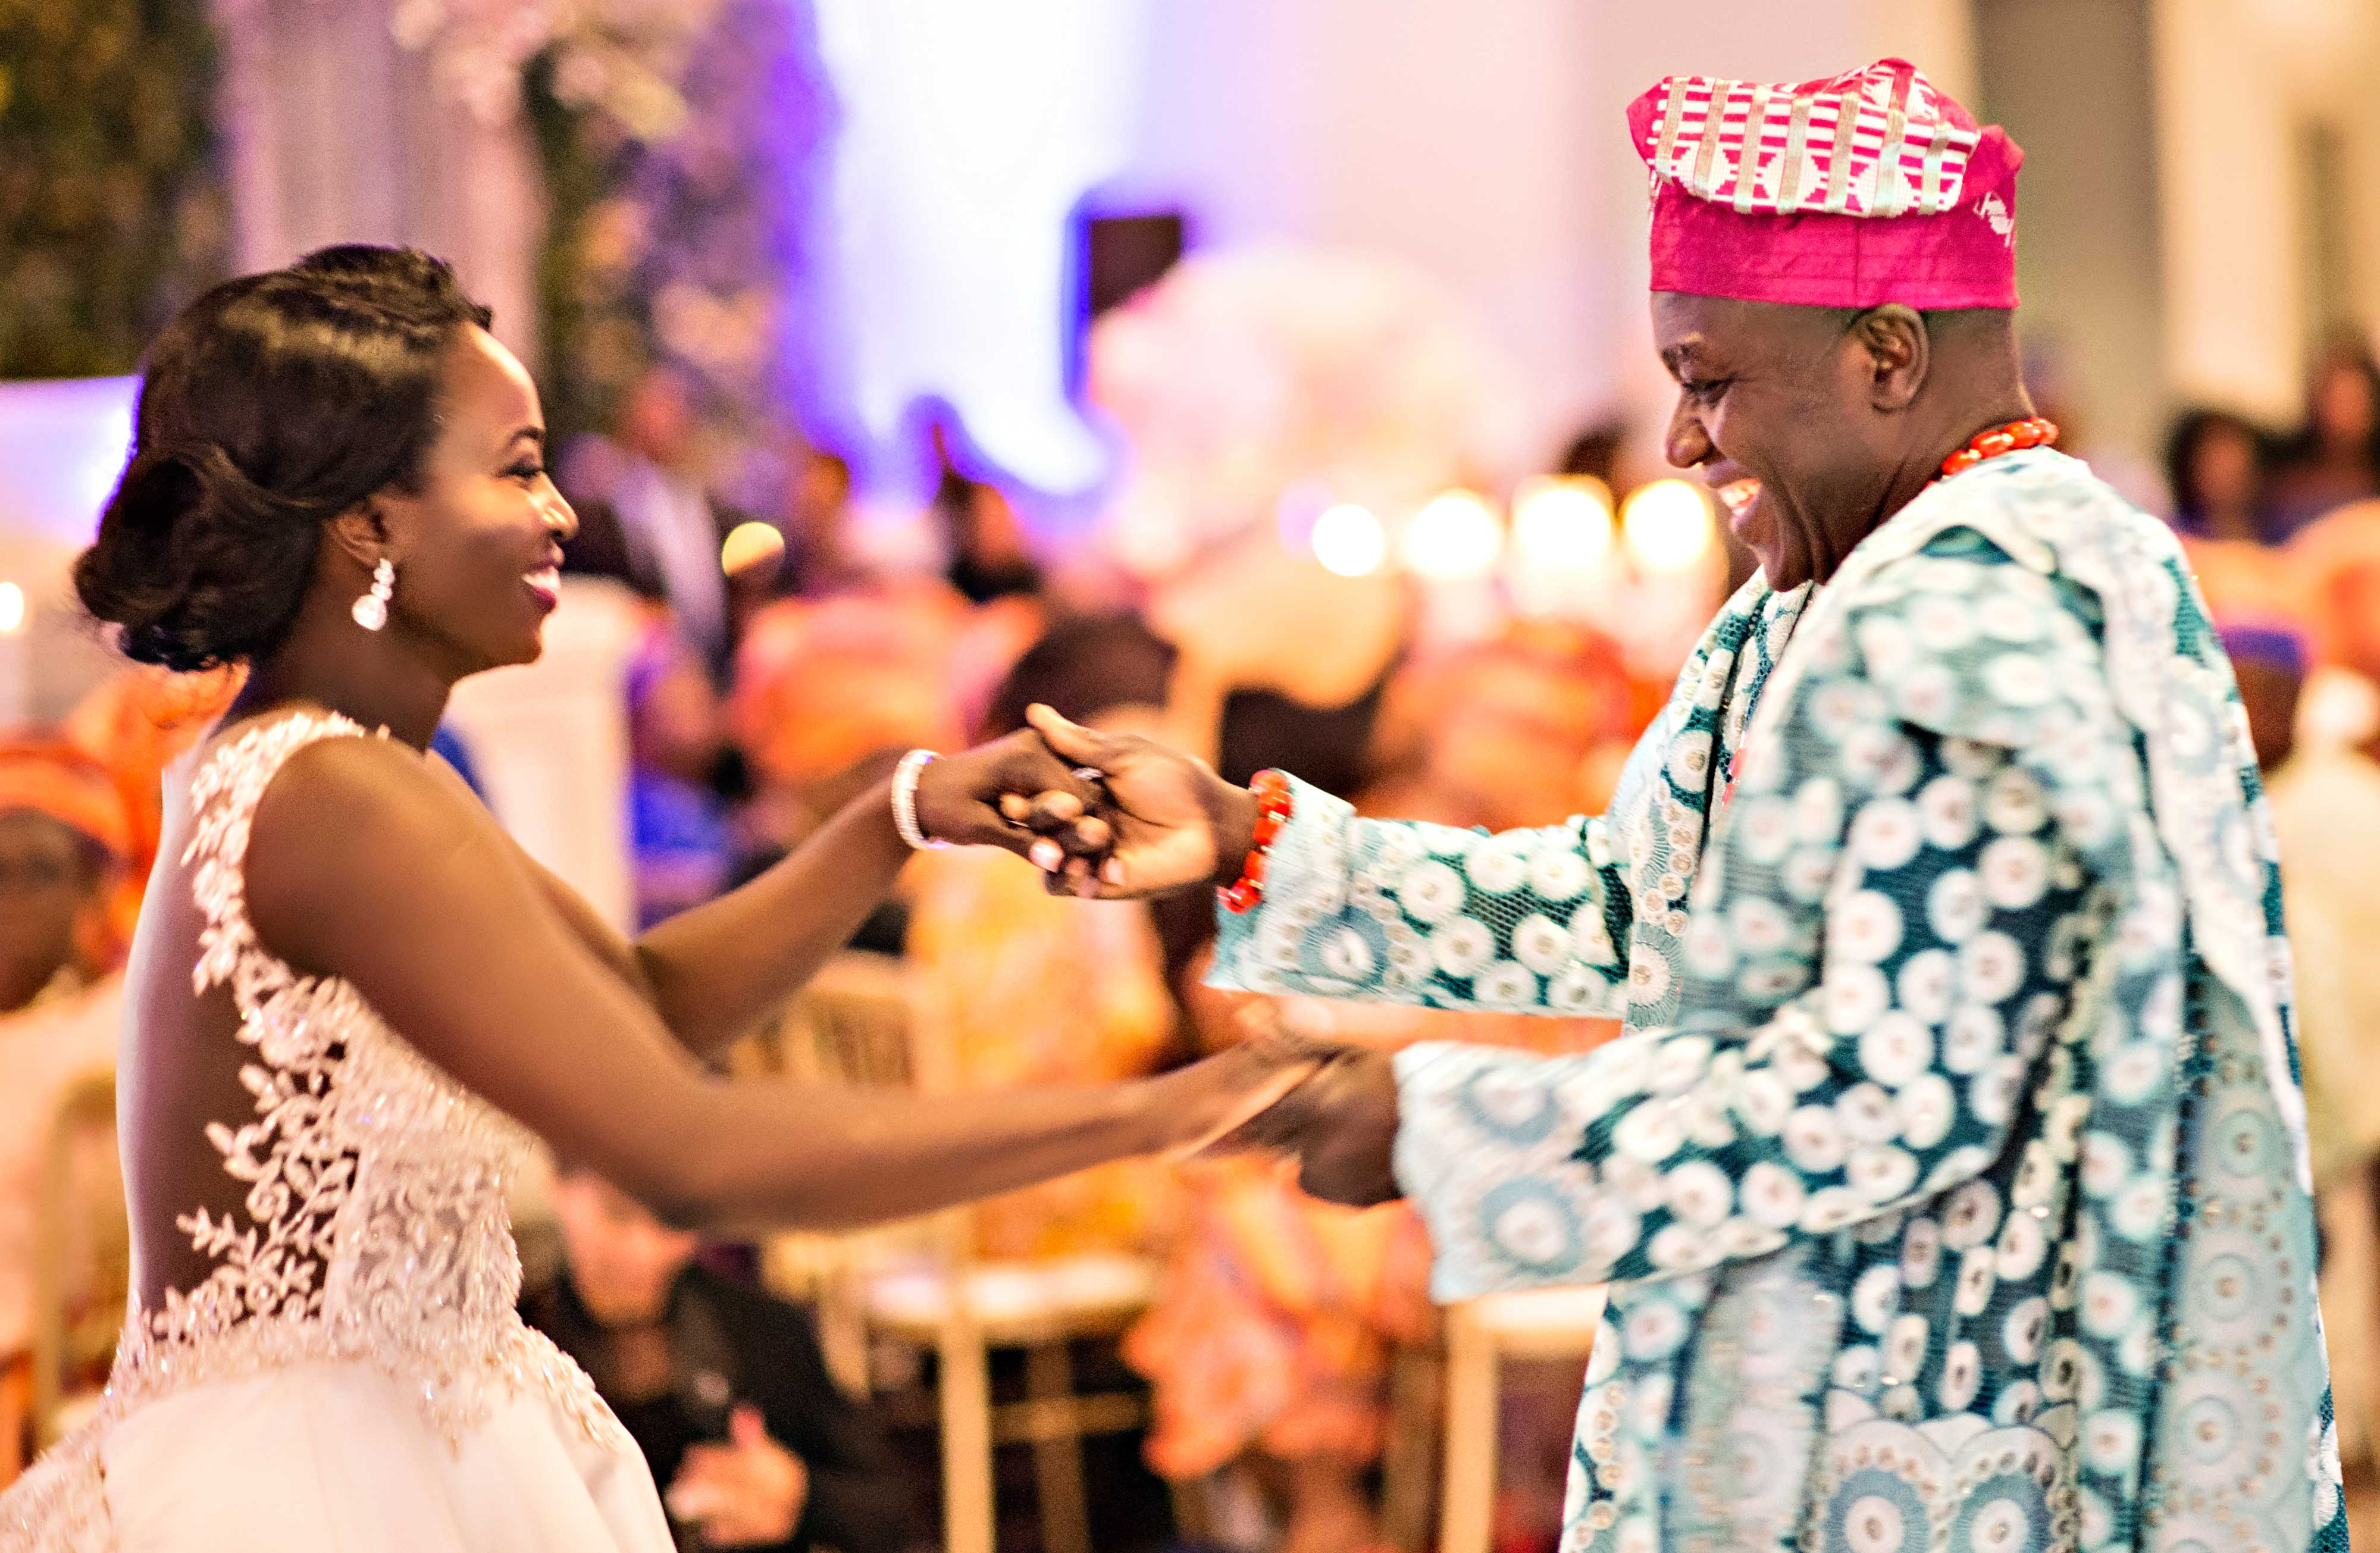 Nigerian wedding traditions garb father daughter dance